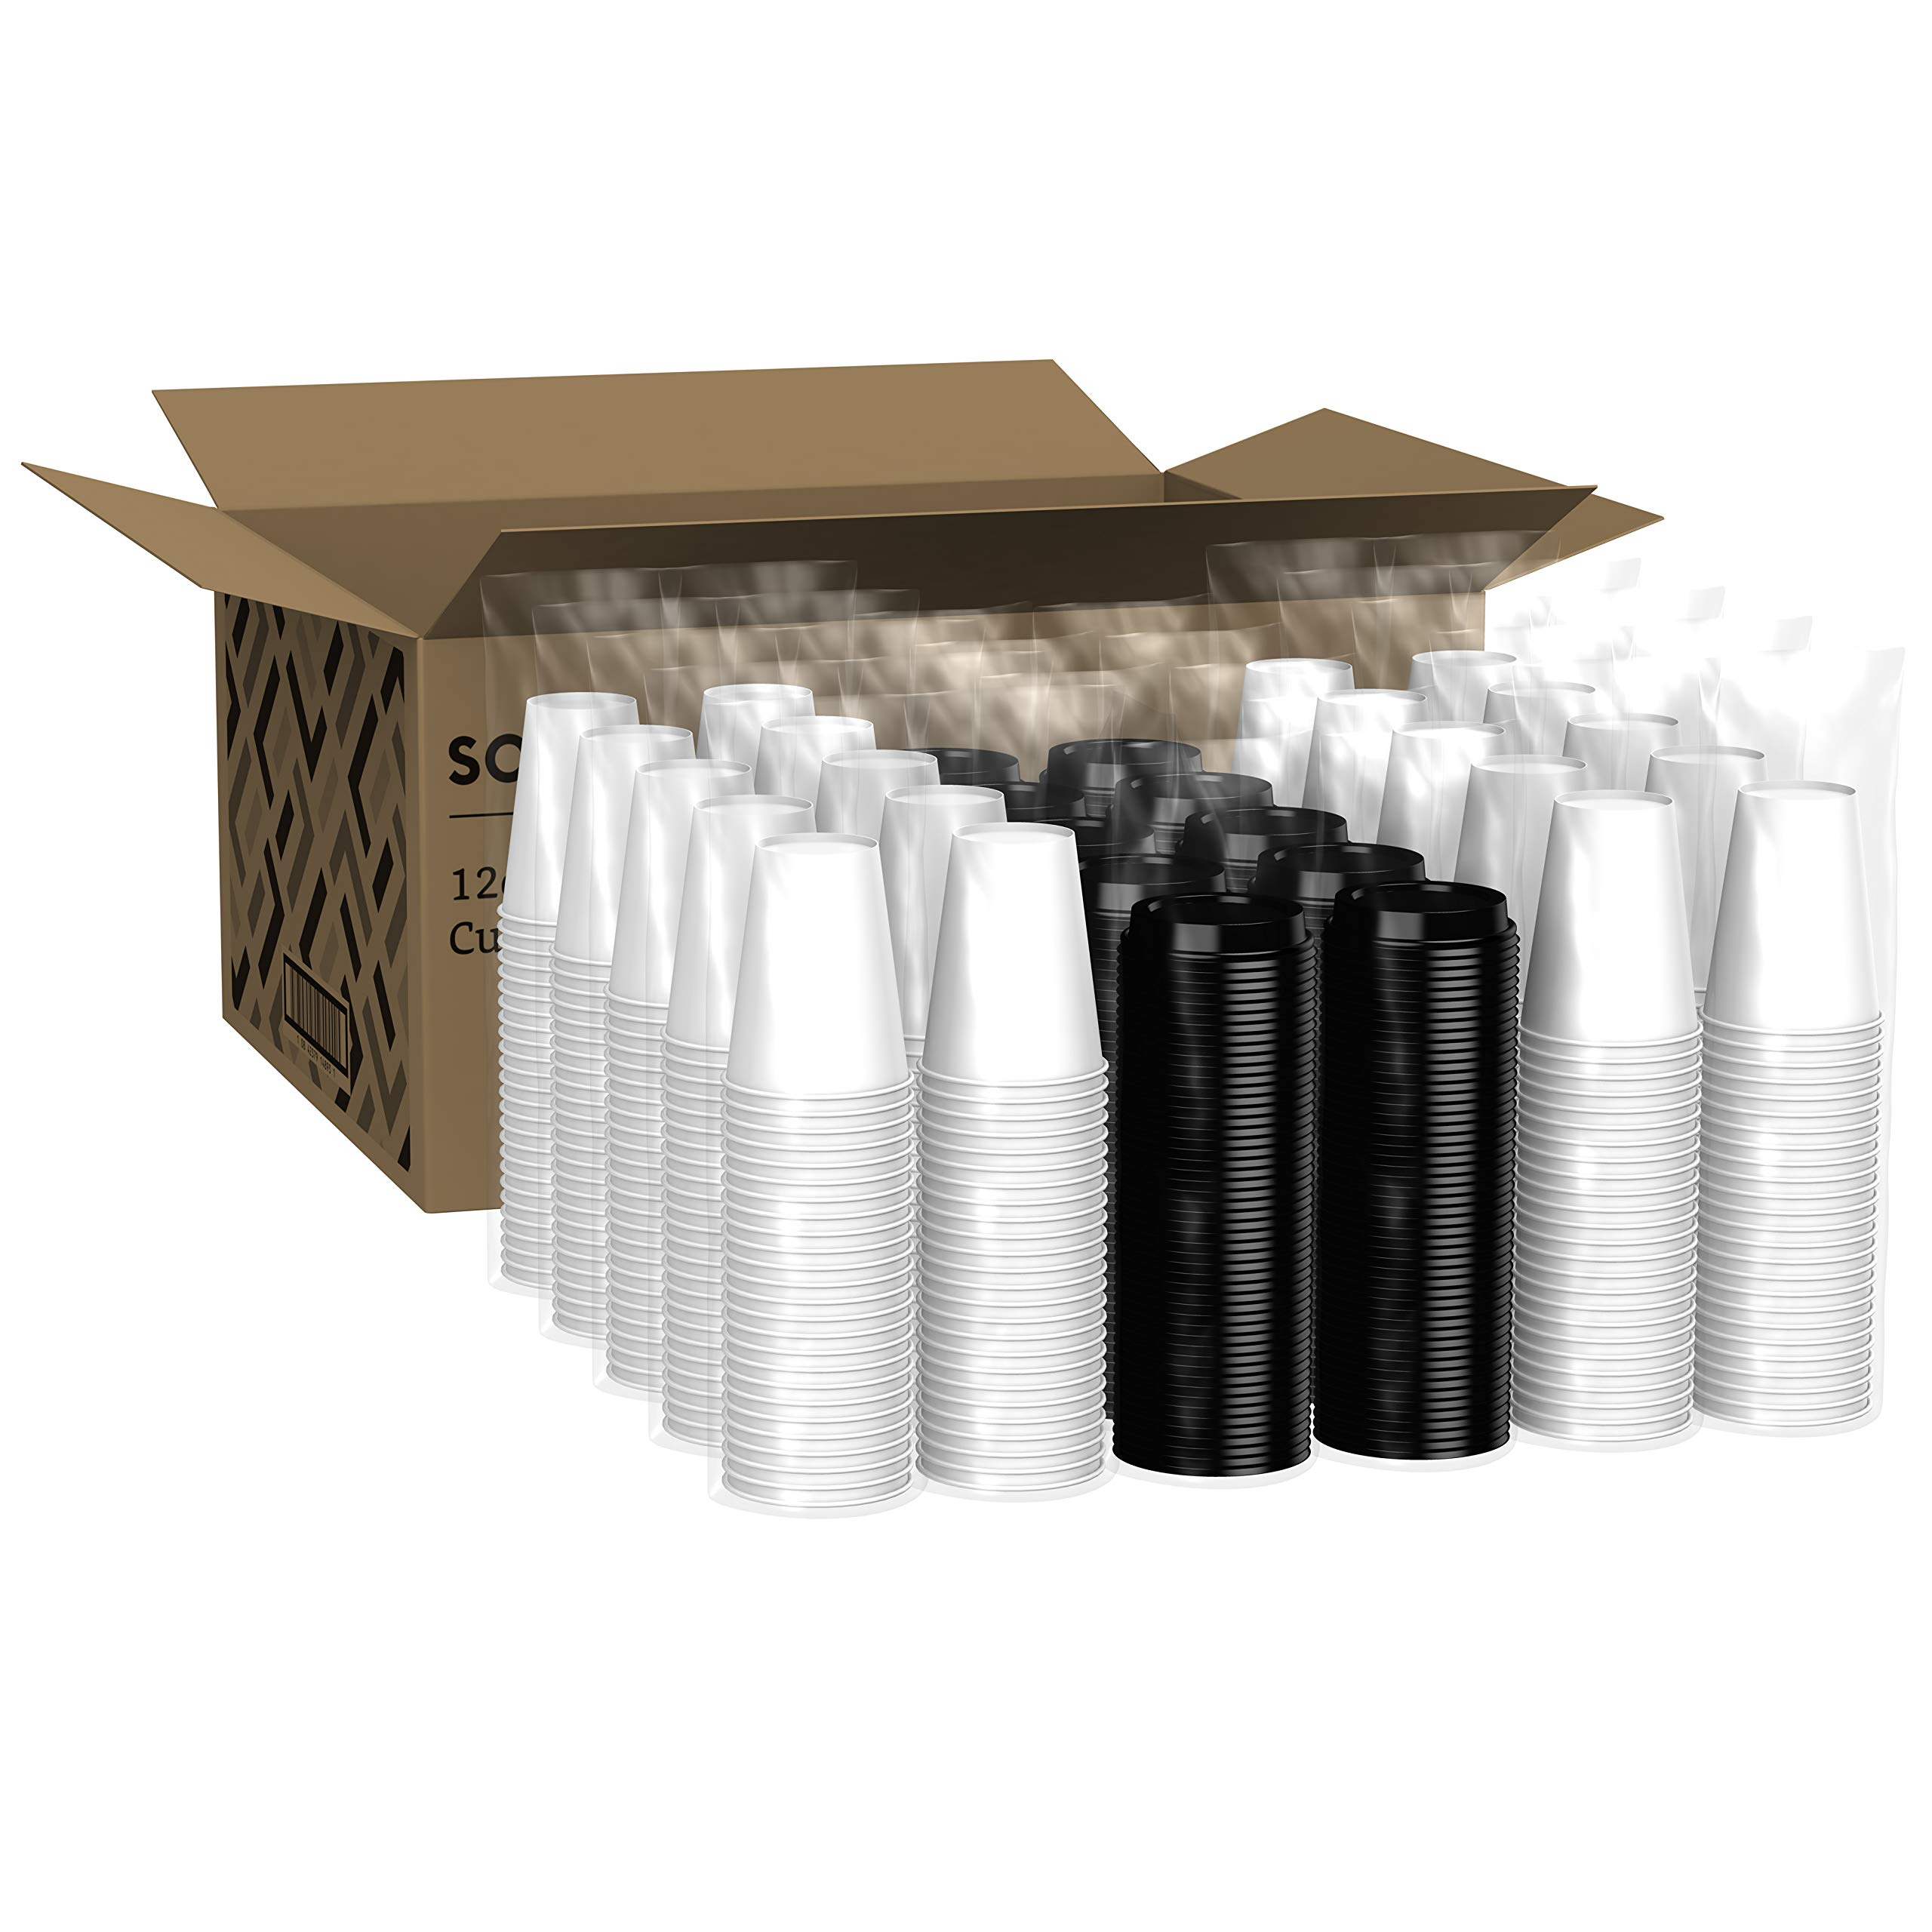 Amazon Brand - Solimo 12oz Paper Hot Cup with Lid, 500 Count by Solimo (Image #3)